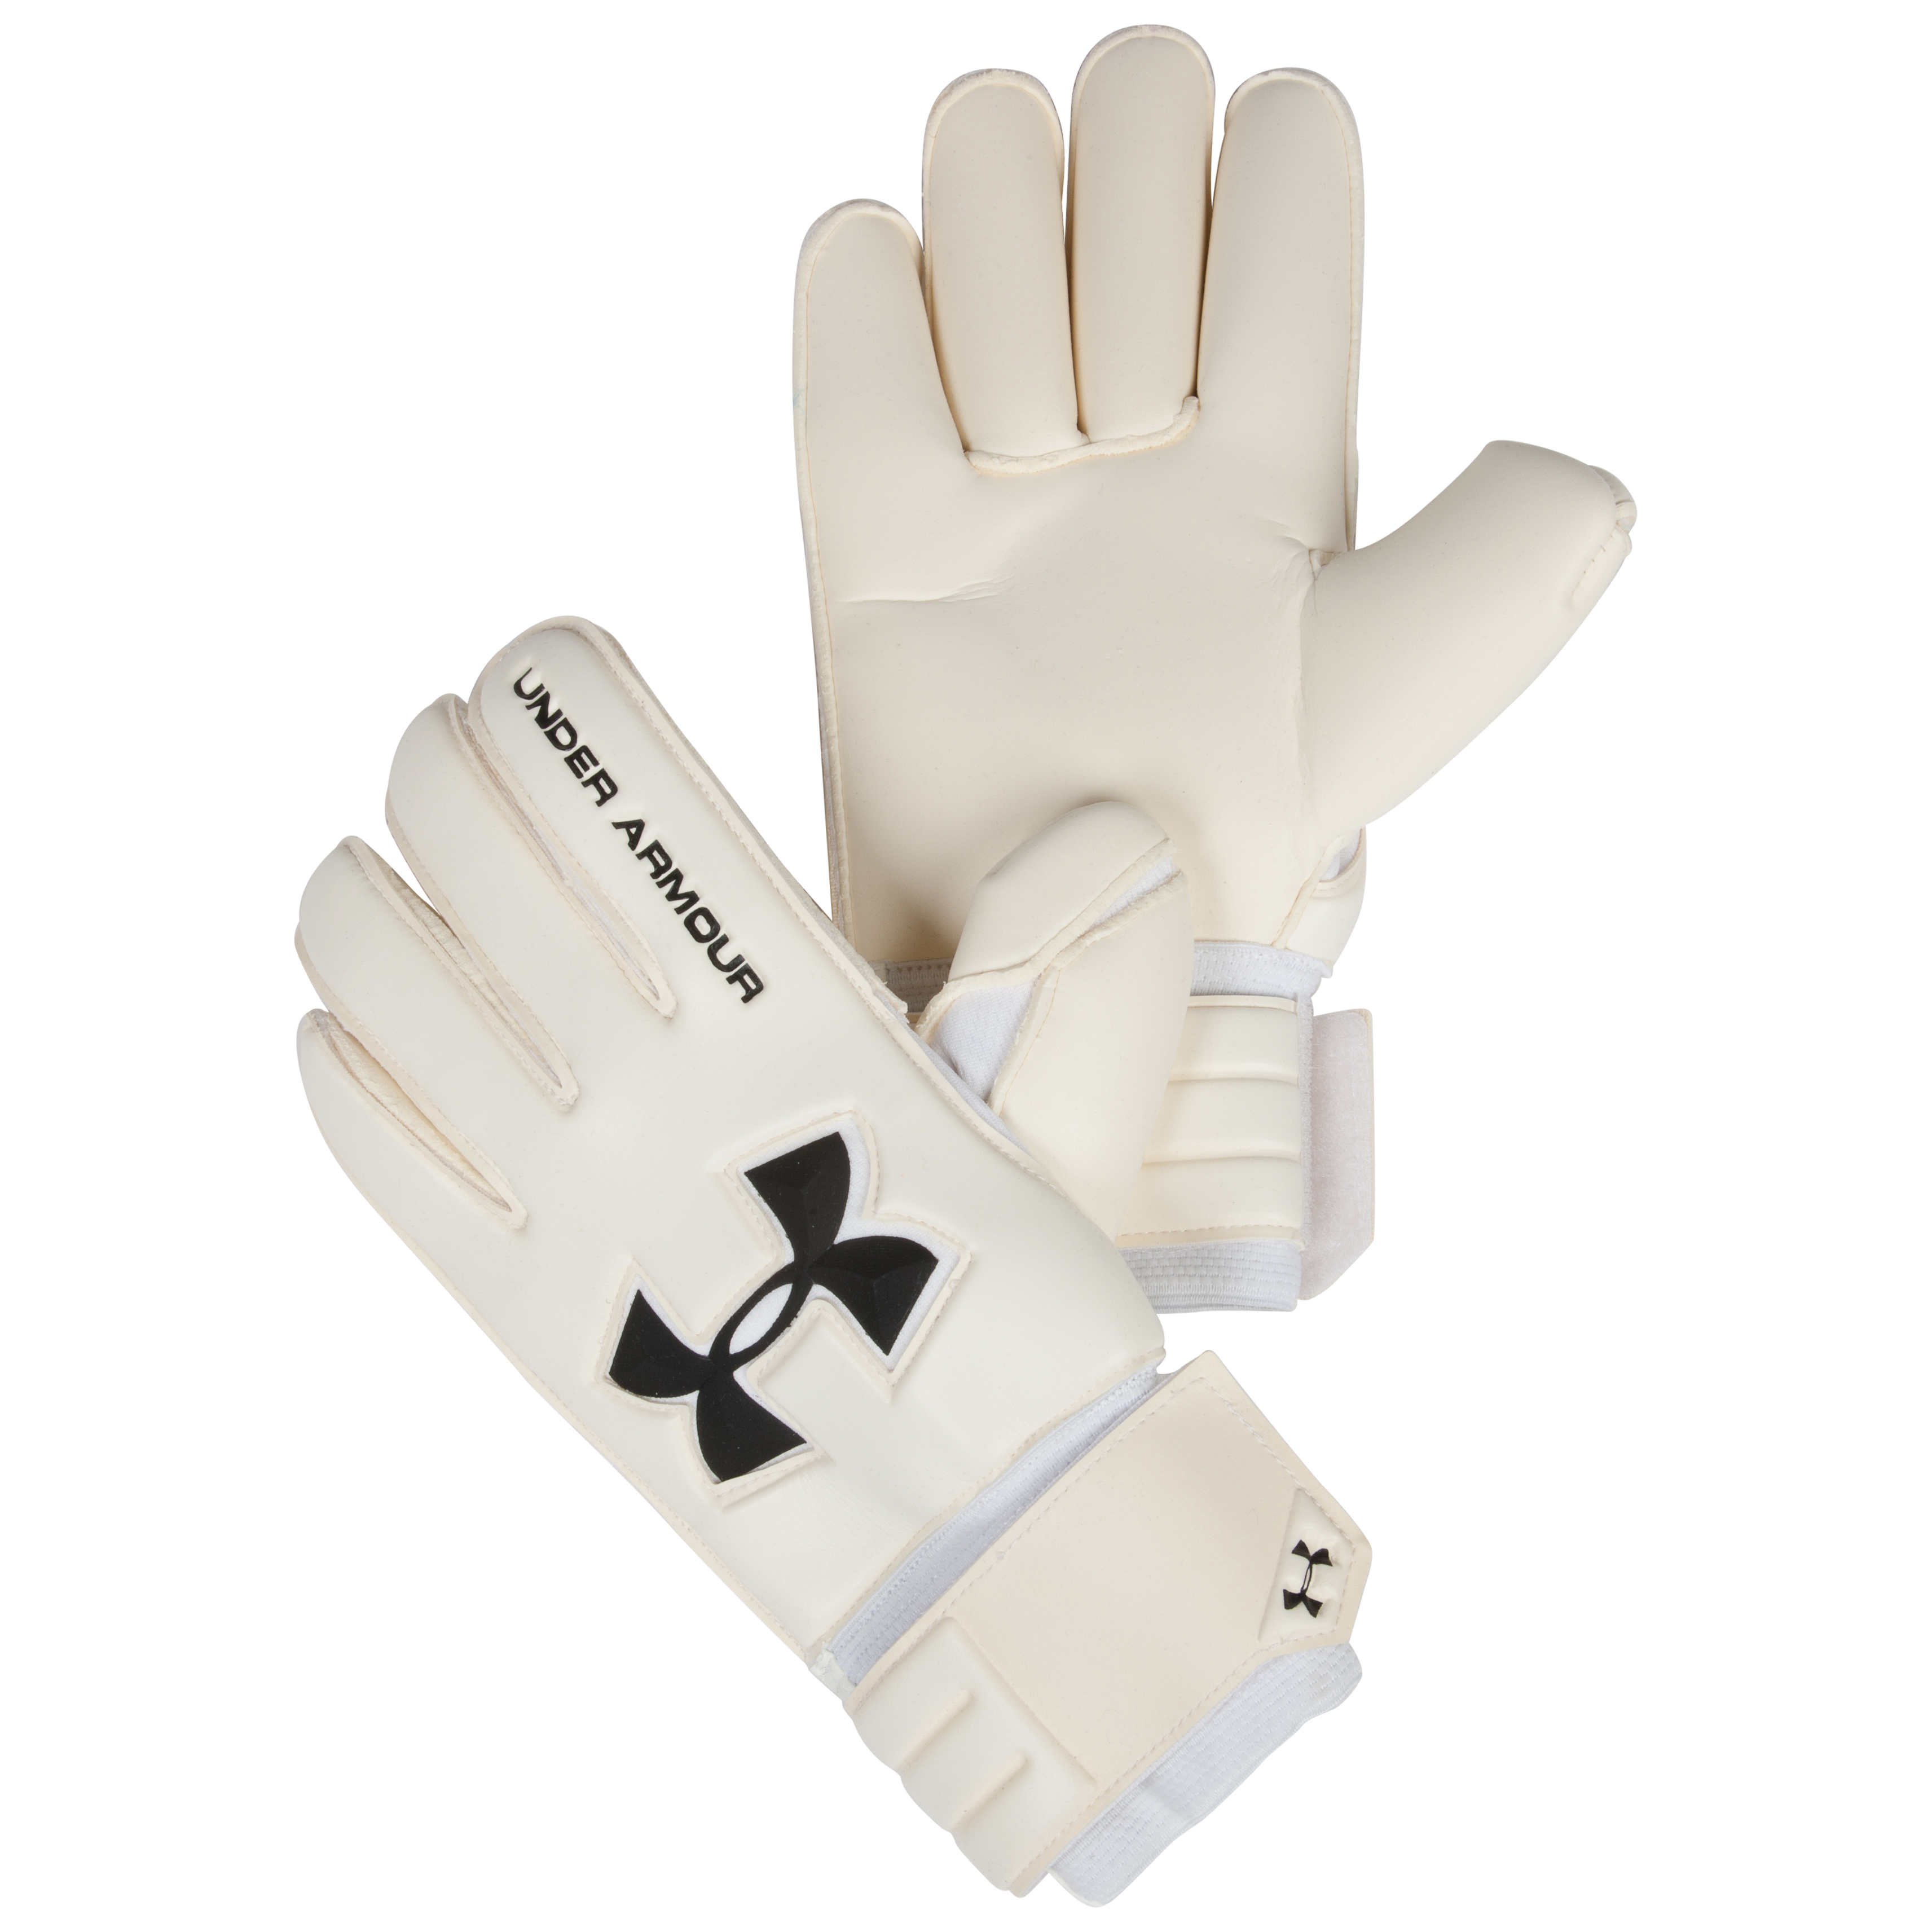 Under Armour Negate Goalkeeper Gloves-White